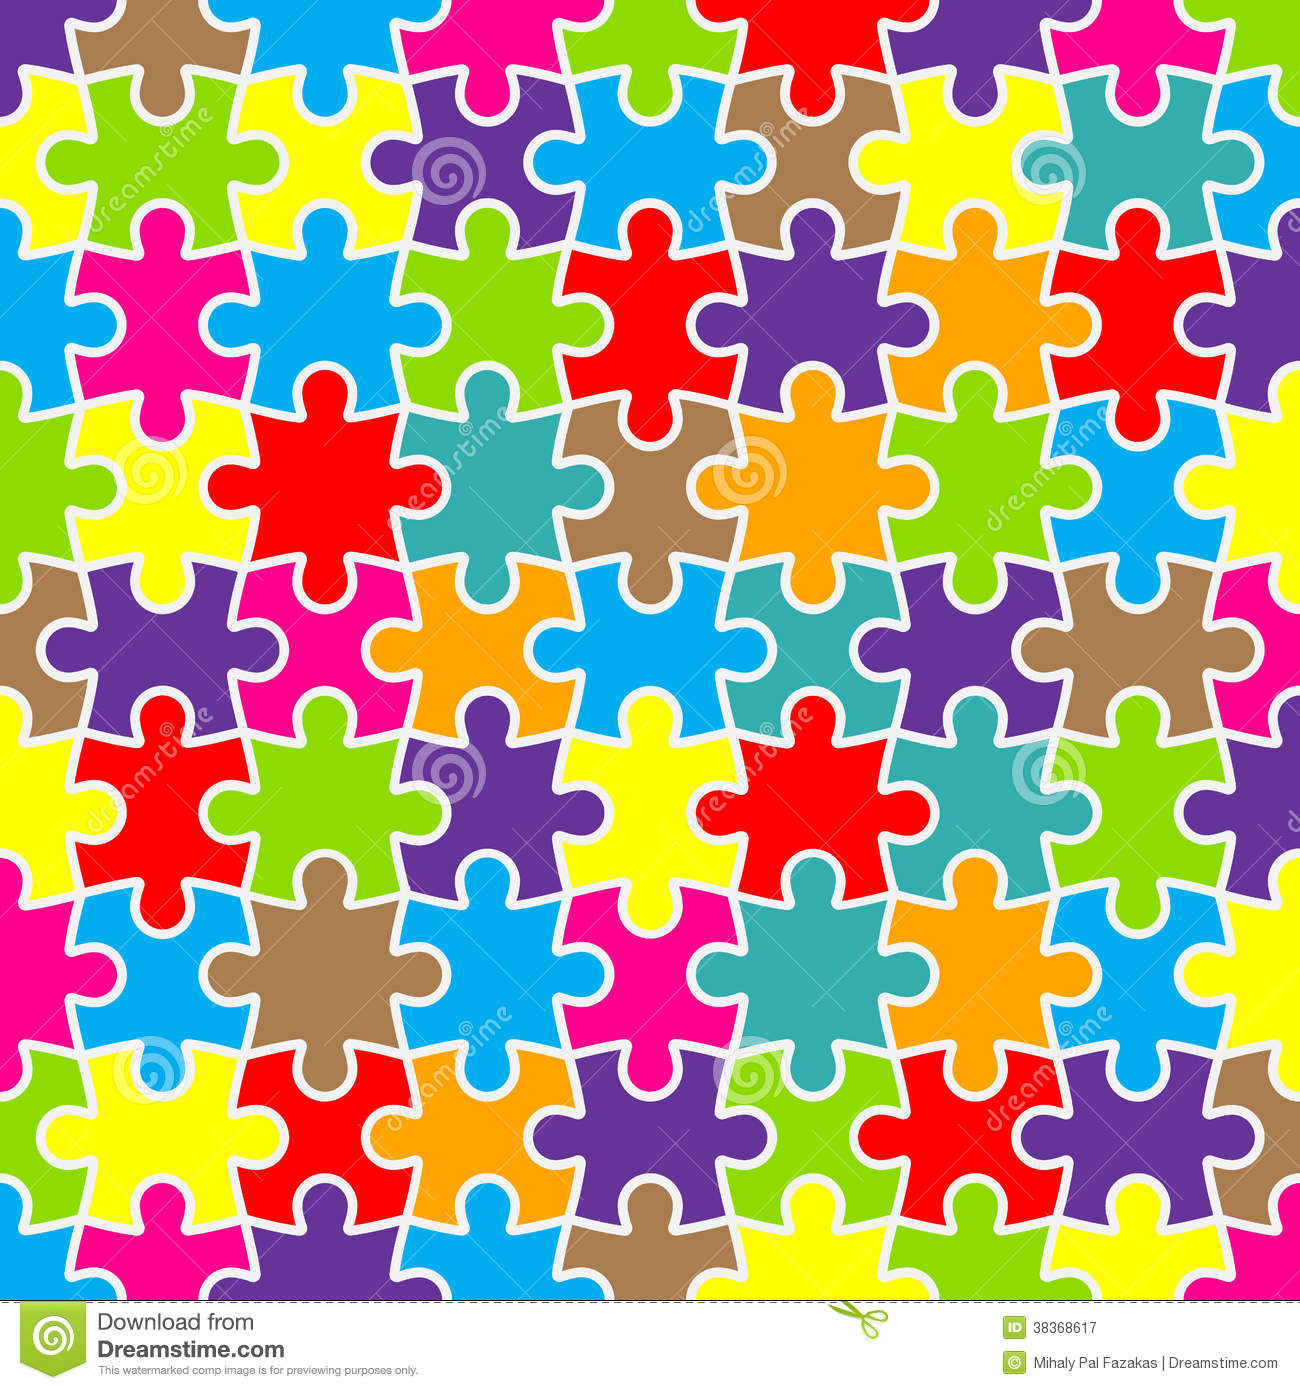 Abstract Puzzle Background With Colorful Pieces Stock Vector